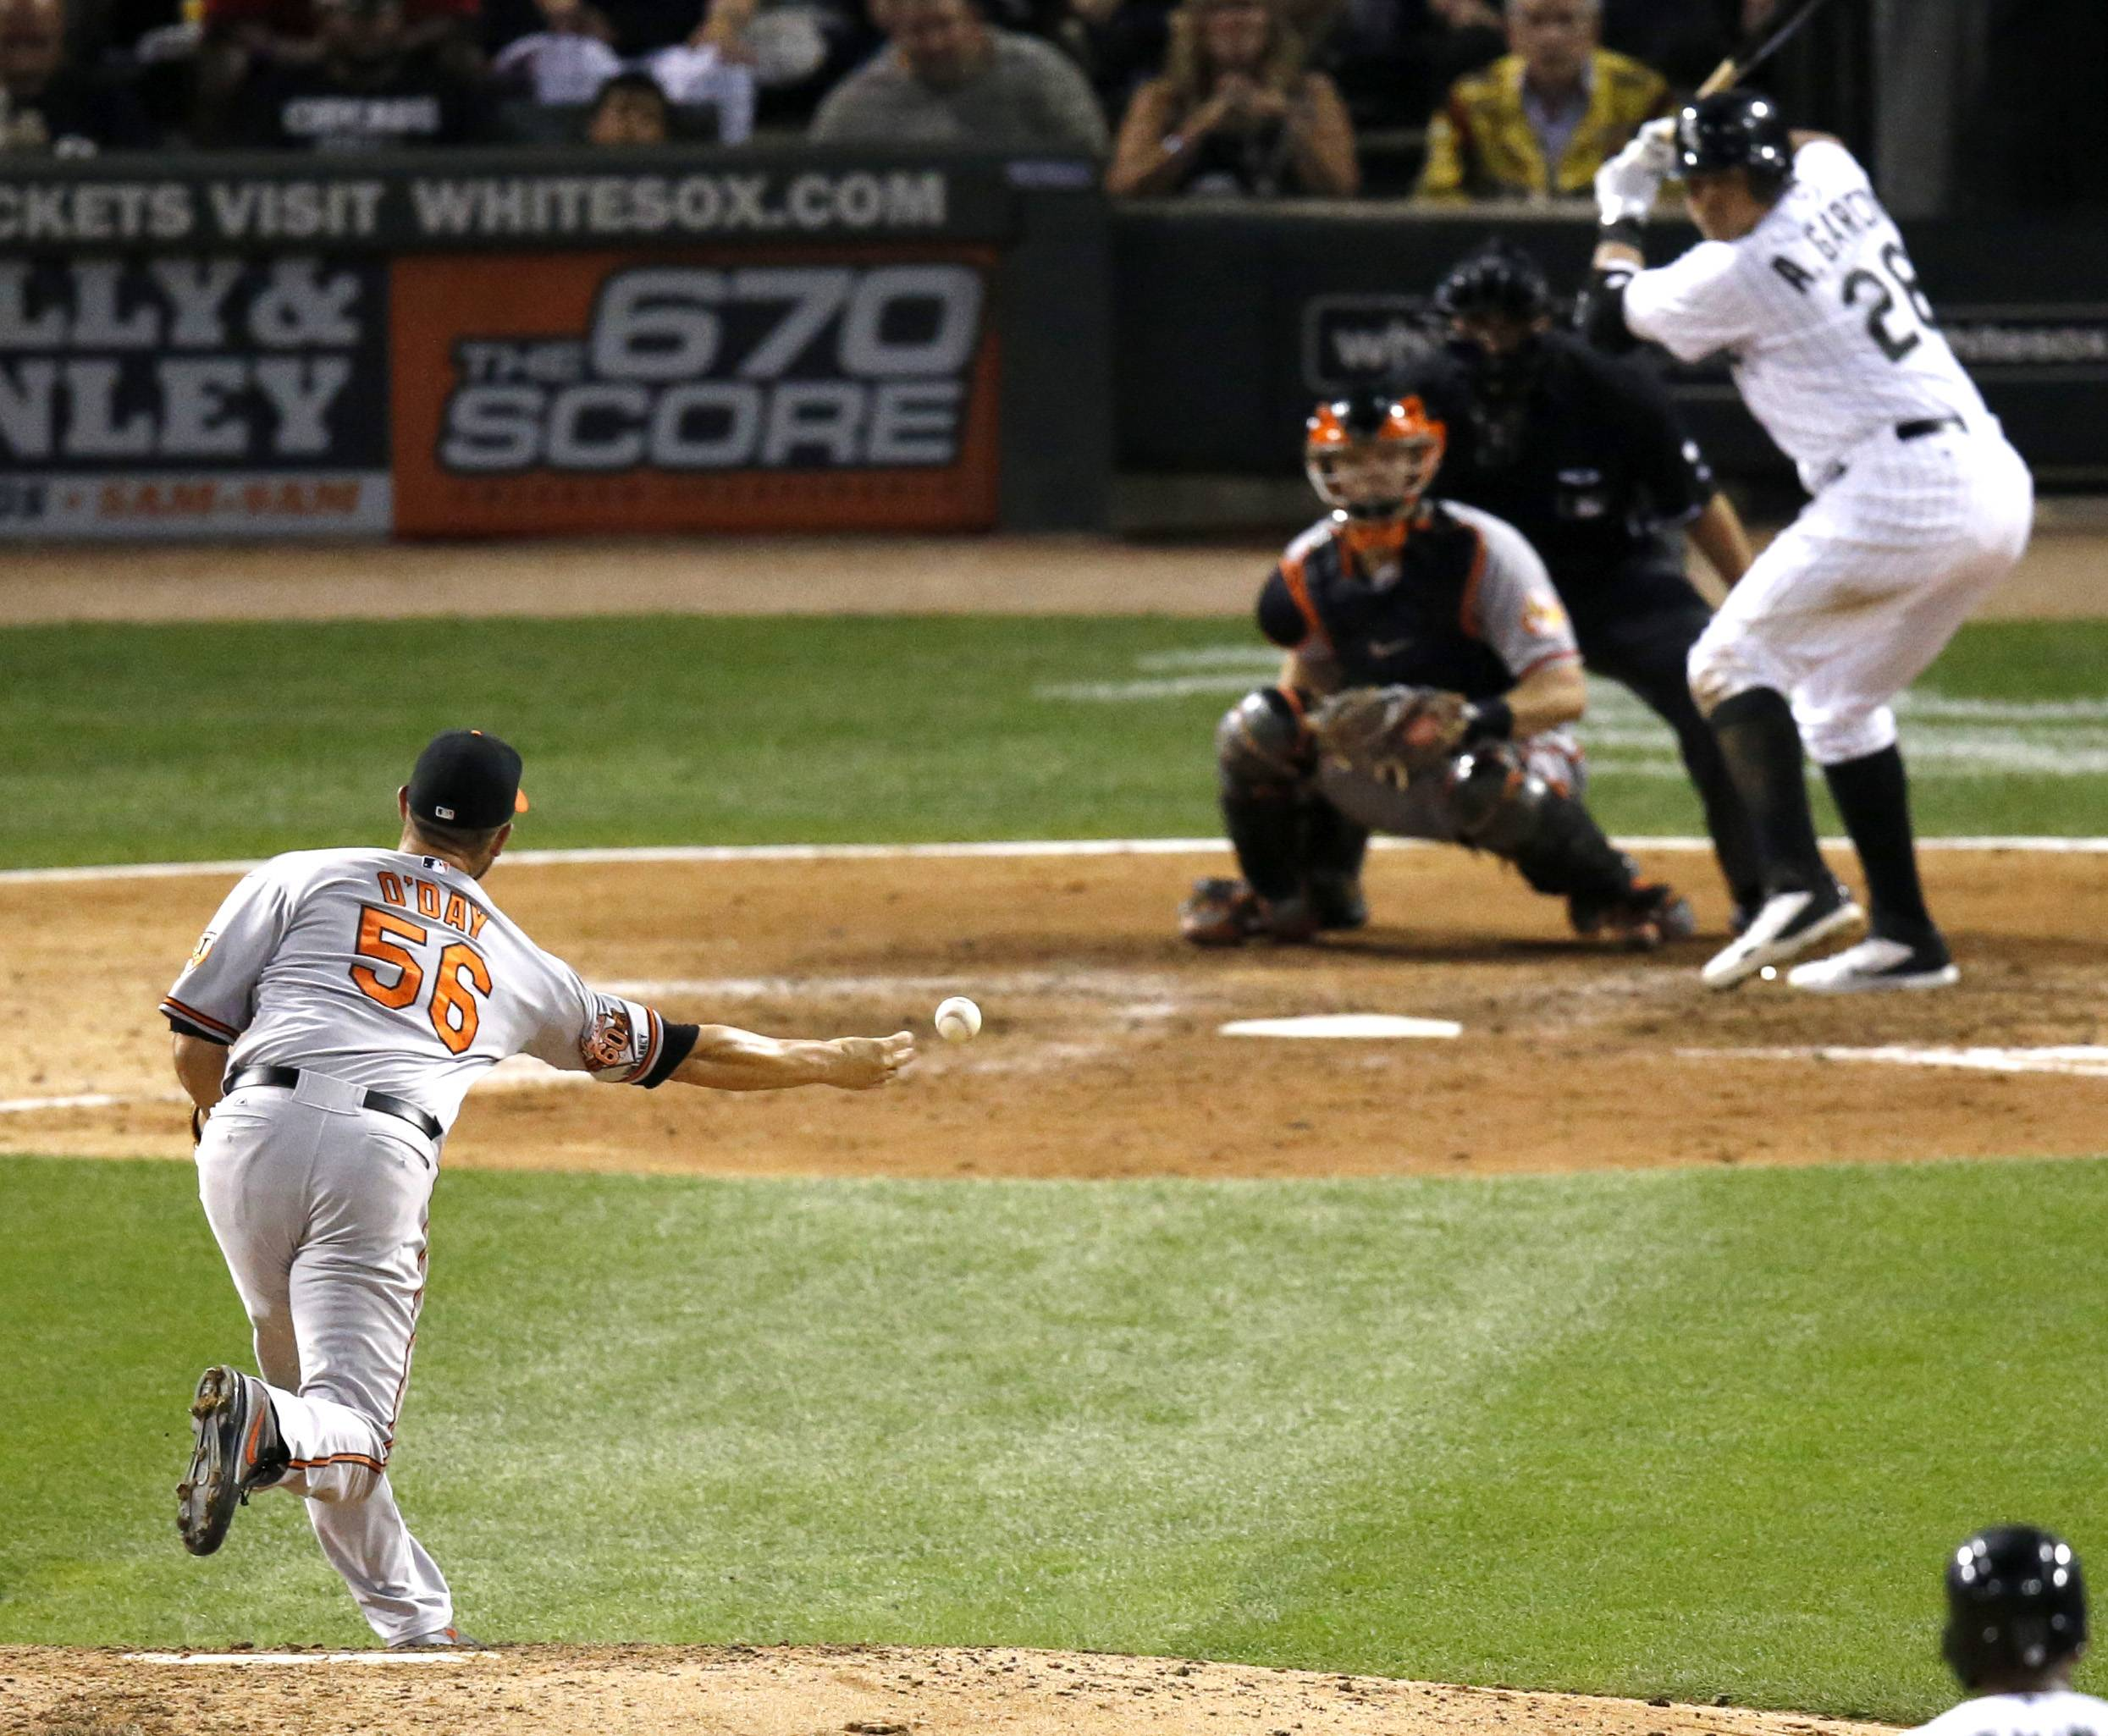 Baltimore Orioles relief pitcher Darren O'Day pitches to Chicago White Sox's Leury Garcia, during the eighth inning of a baseball game Wednesday, Aug. 20, 2014, in Chicago. Orioles' won 4-3. (AP Photo/Charles Rex Arbogast)